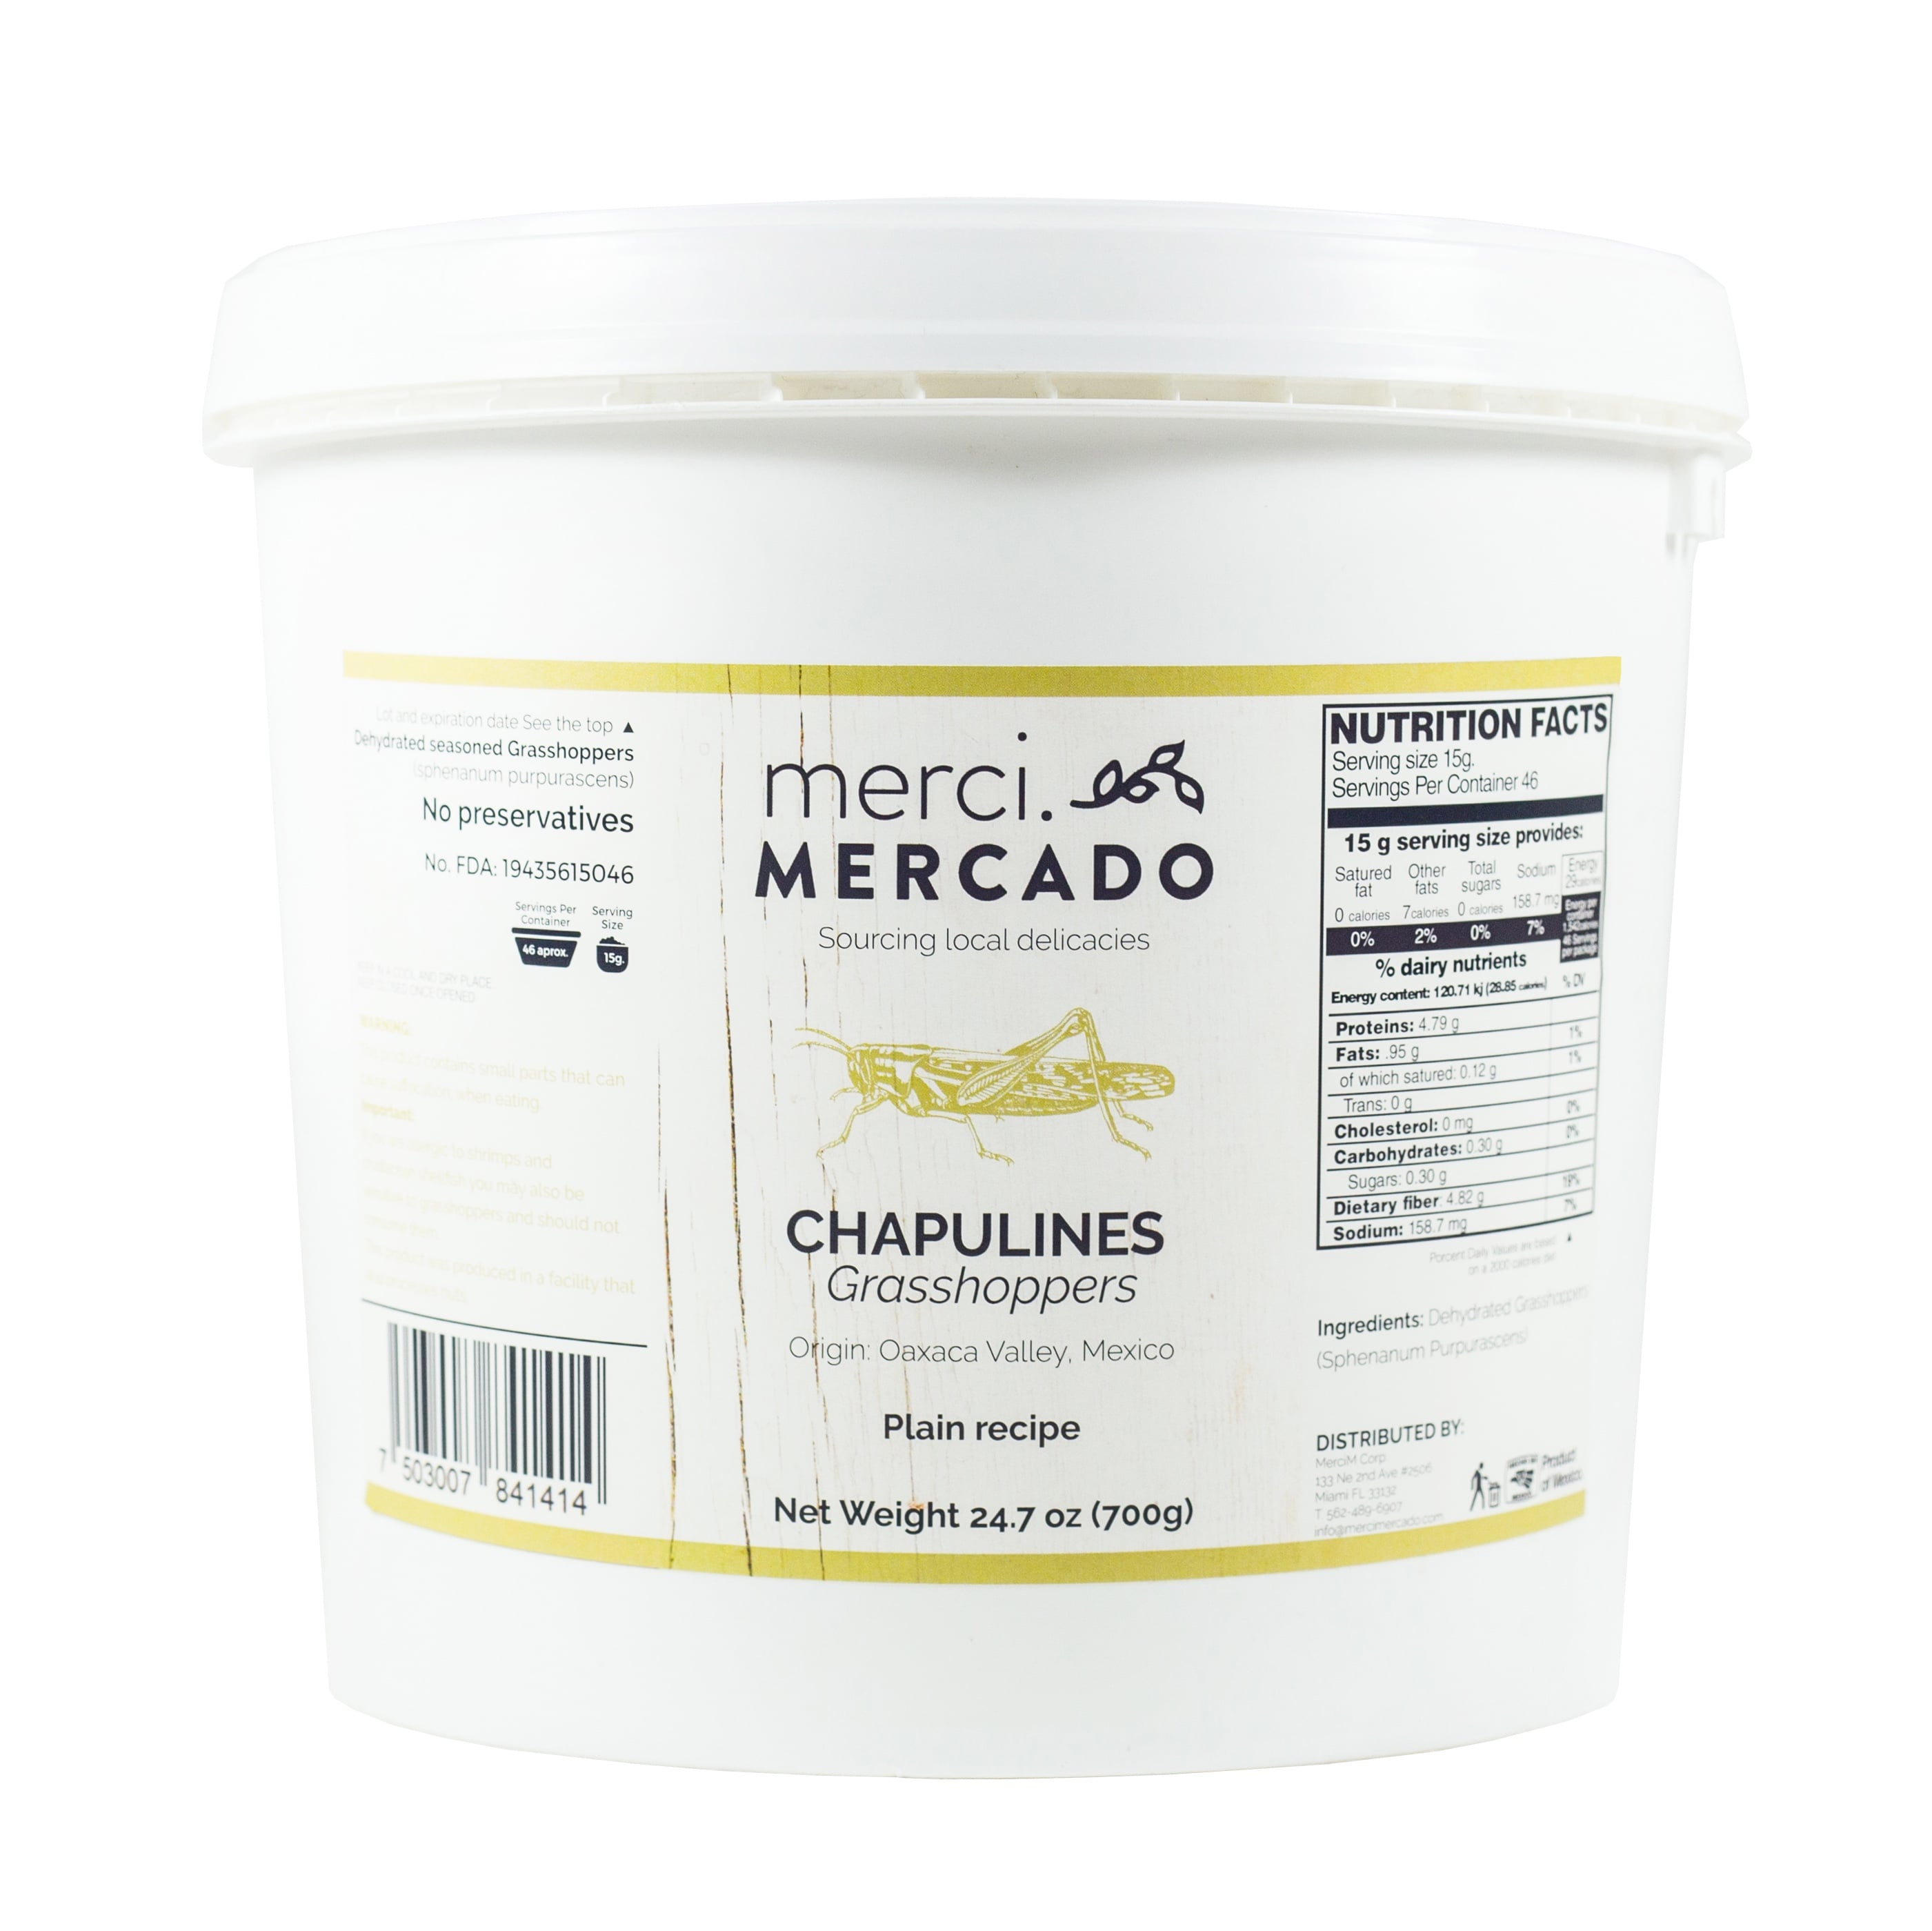 MerciMercado Chapulines Plain Recipe 24.7 Oz